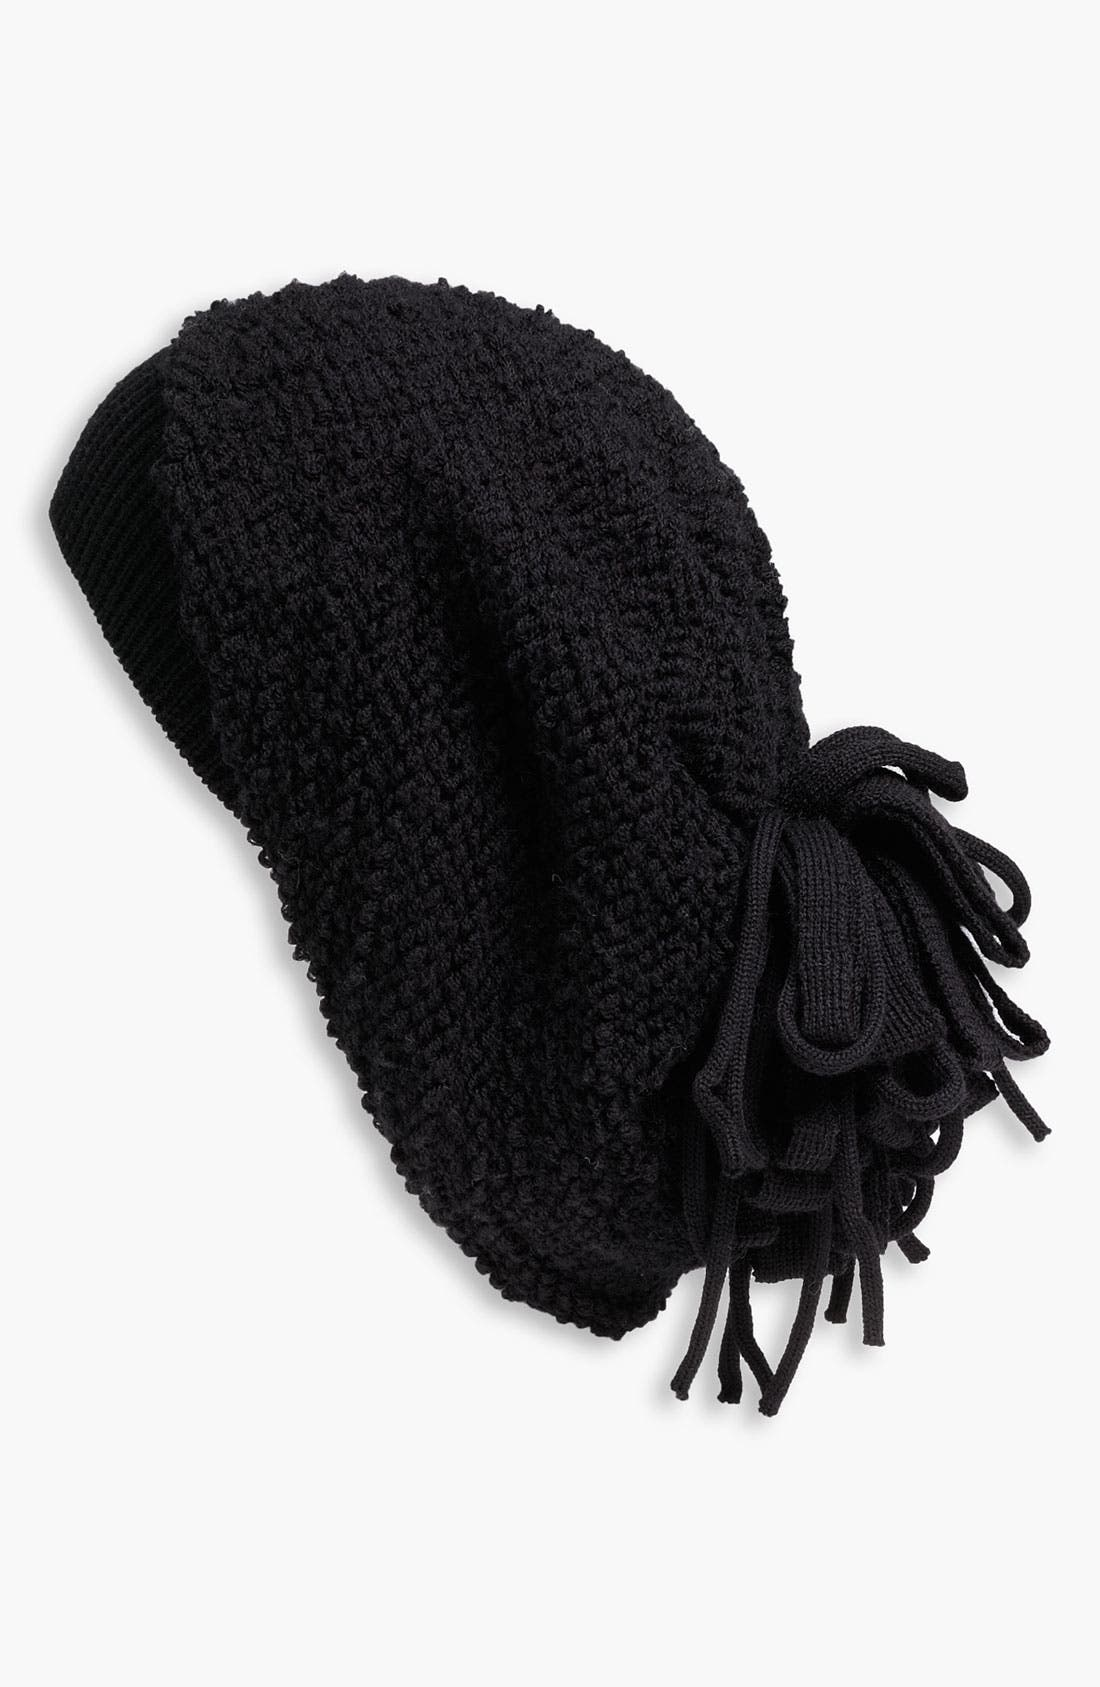 Alternate Image 1 Selected - Sonia Rykiel Pompom Beret